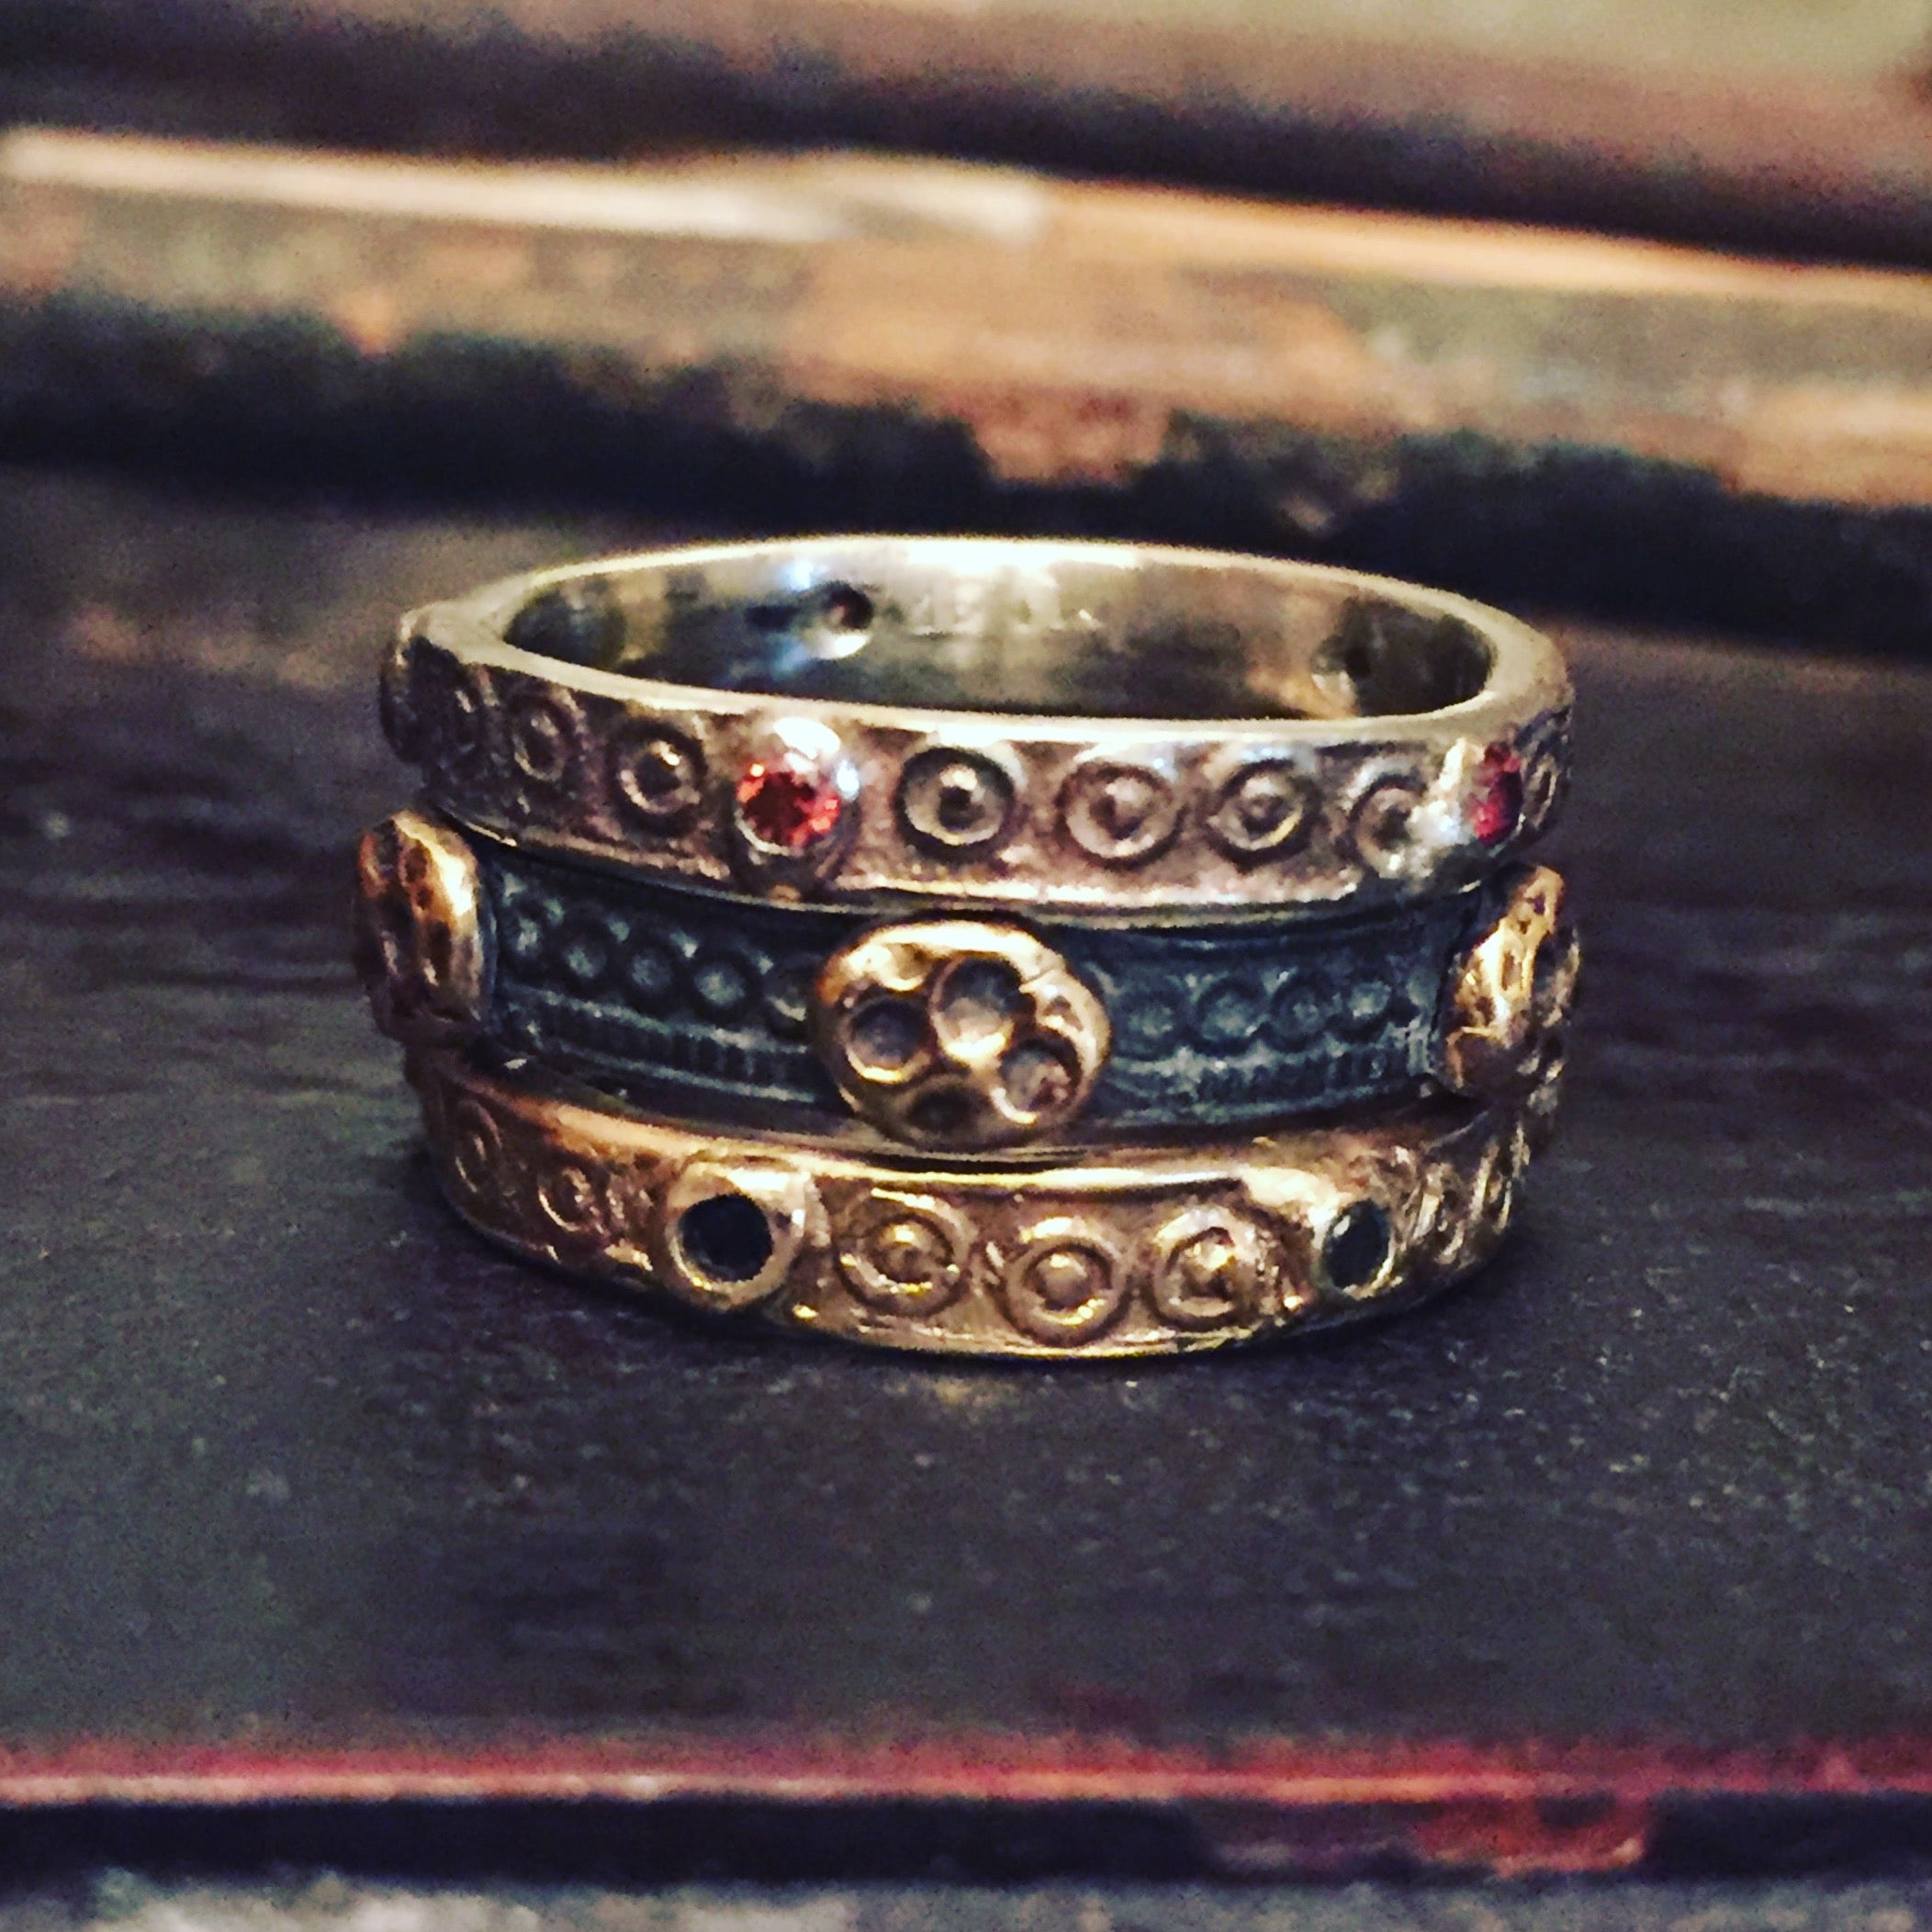 Blackened Gold Throne Ring